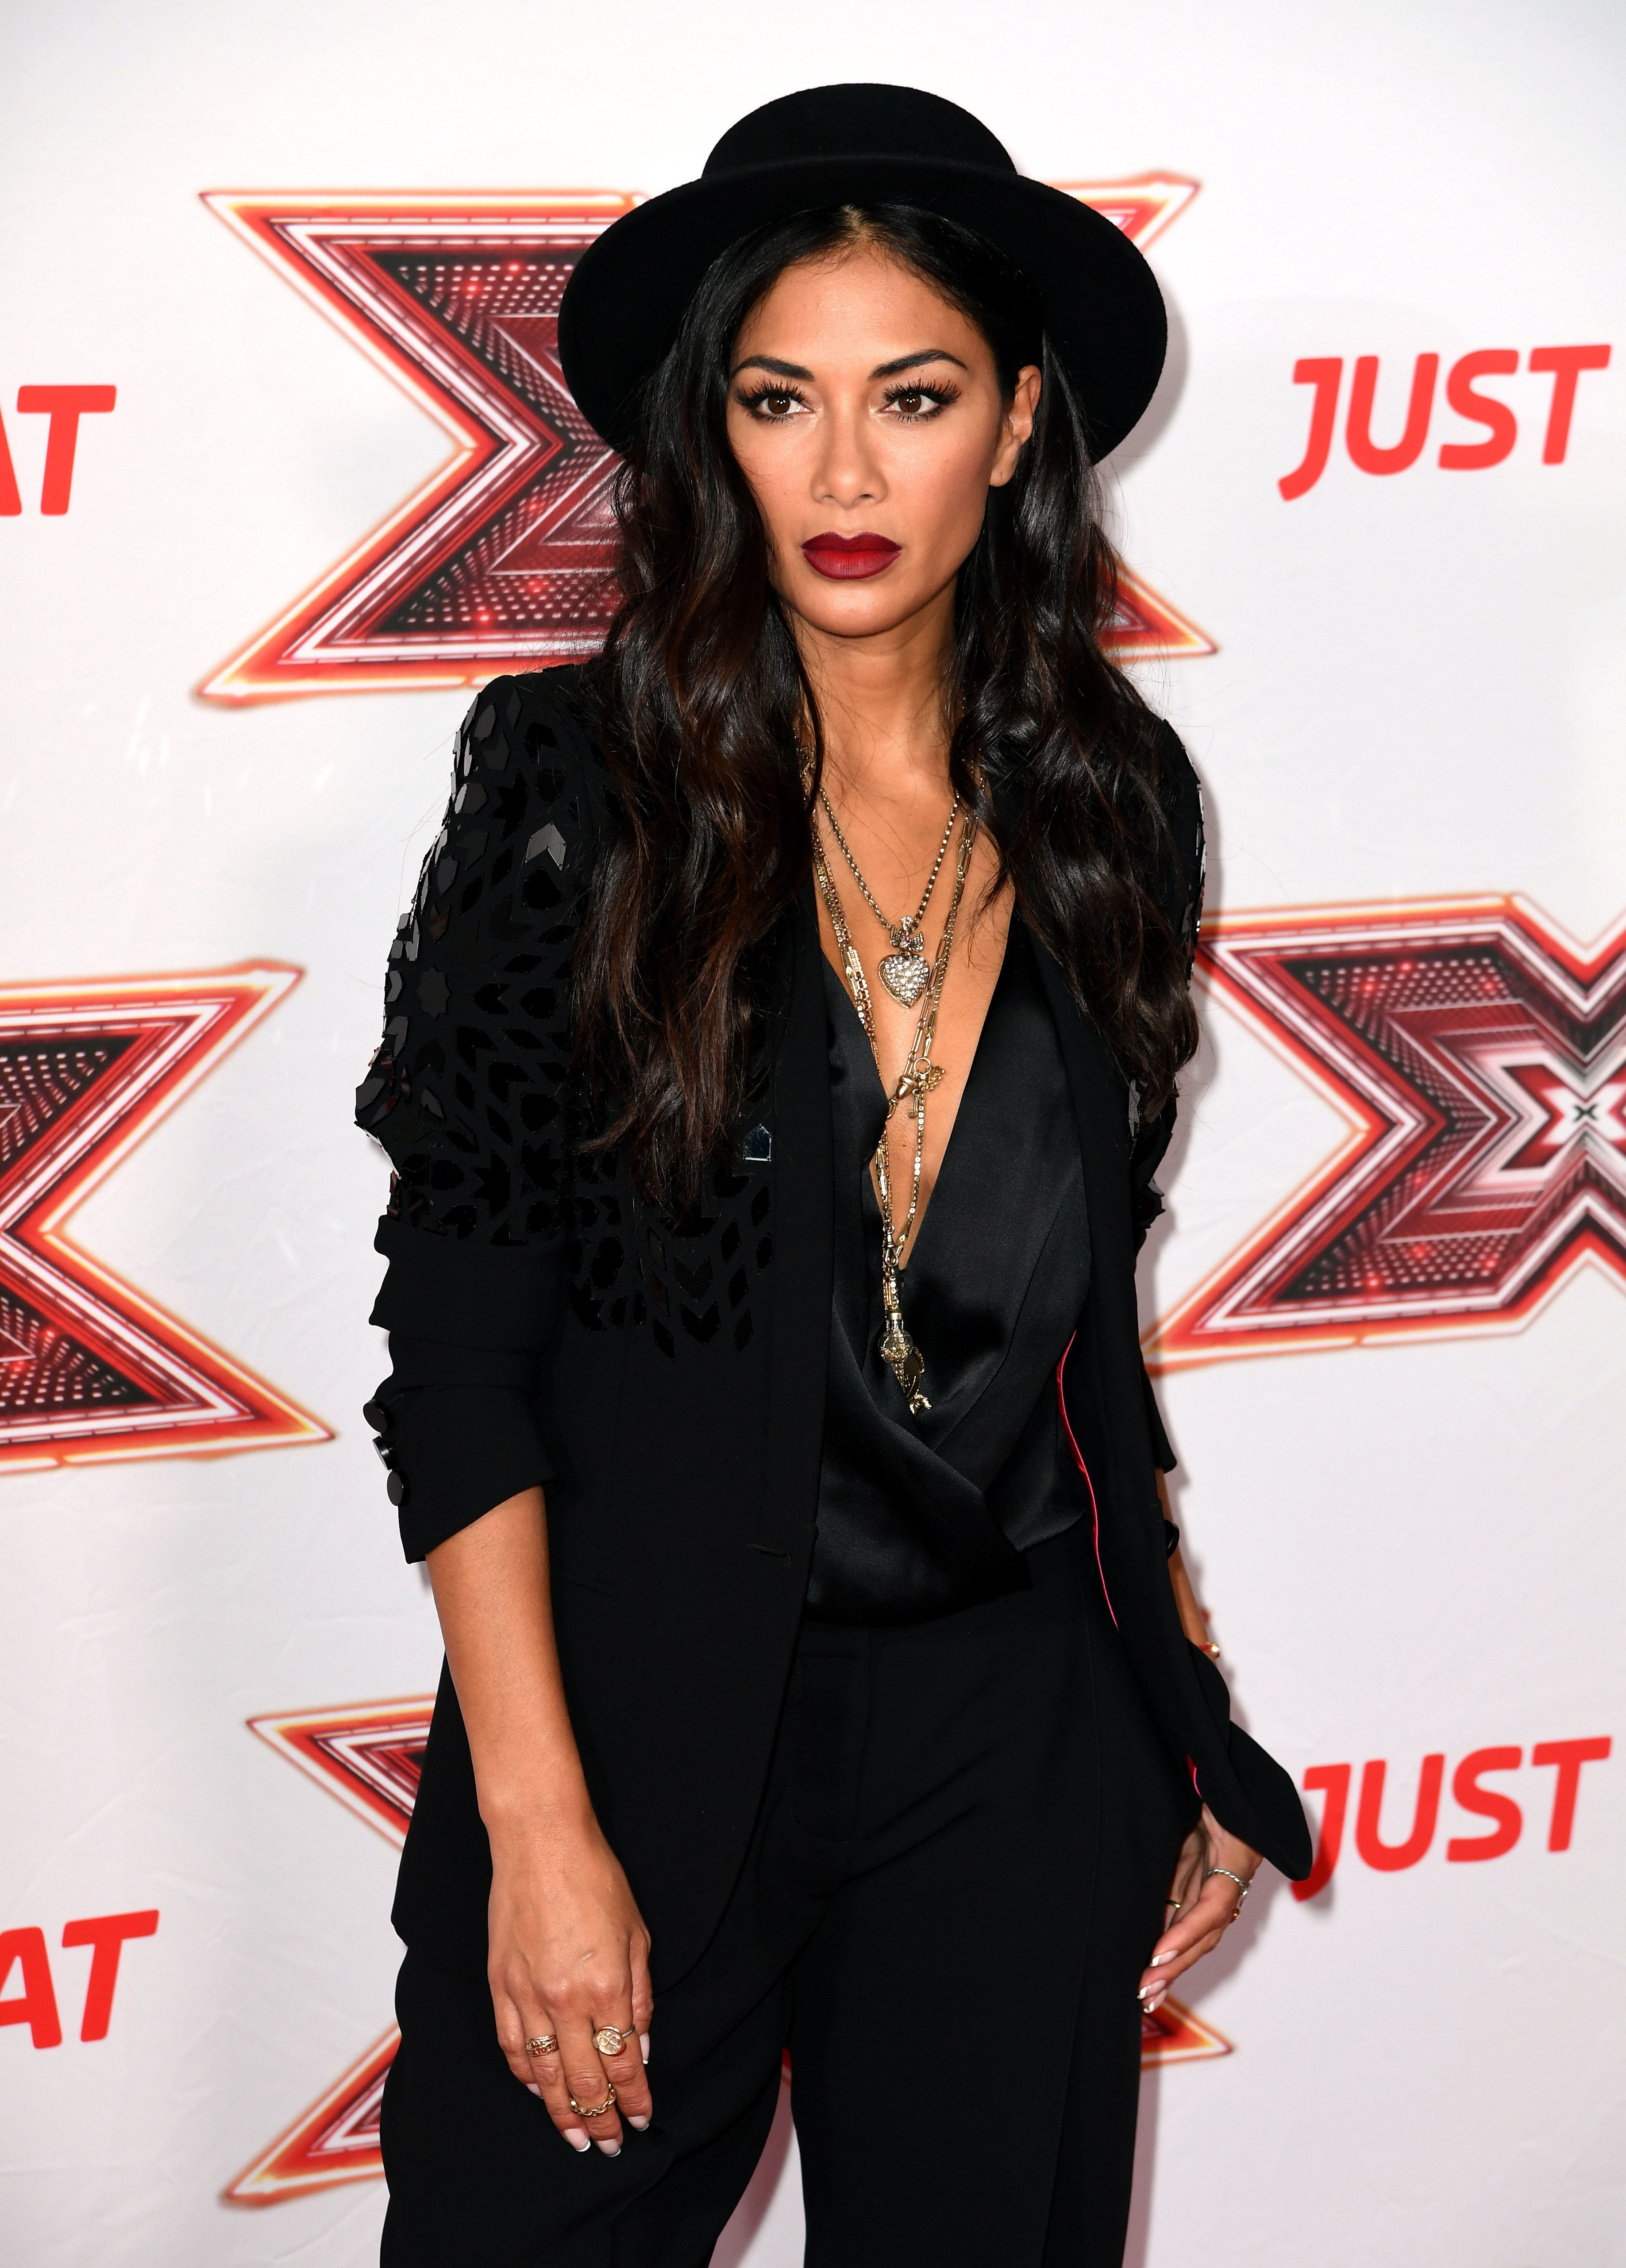 X Factor's Nicole Scherzinger Hits Back At Claims She Is Lying About Her Age